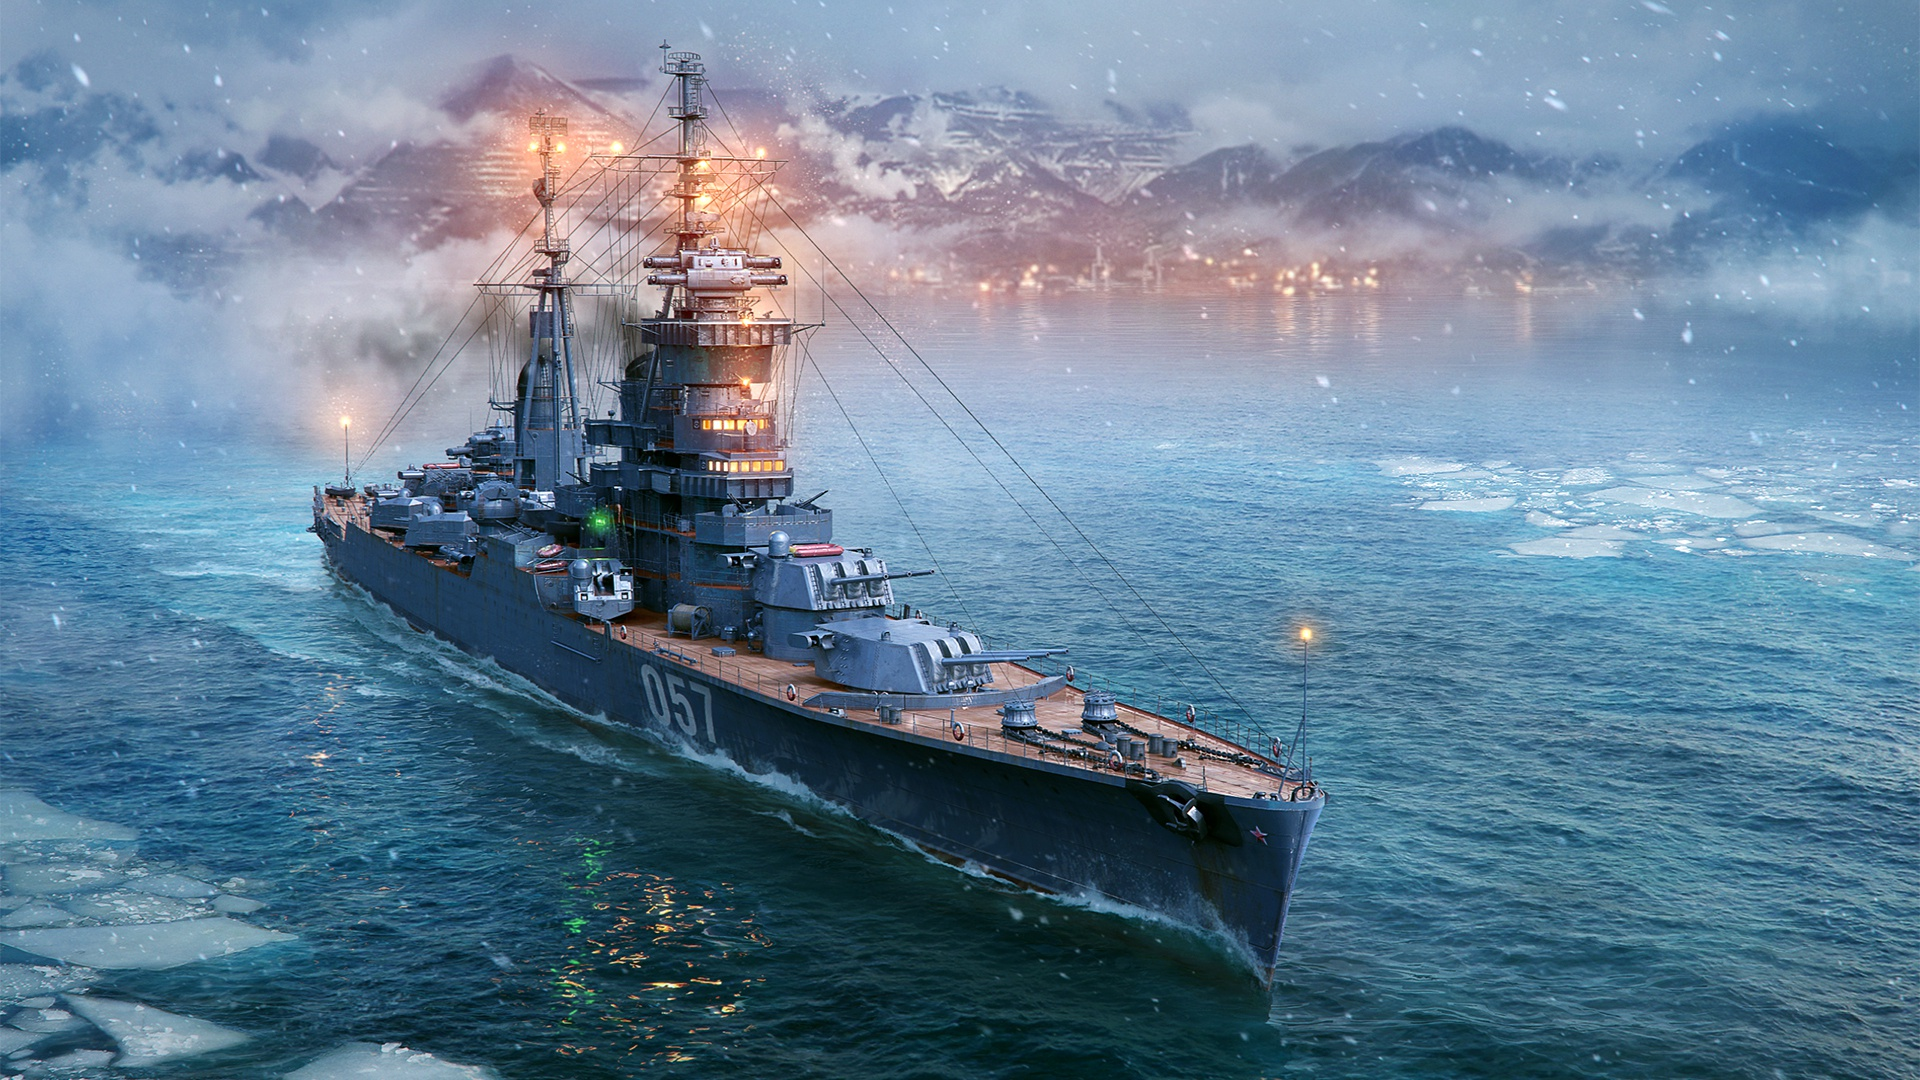 Download Wallpaper World Of Warships Artillery Cruiser Light